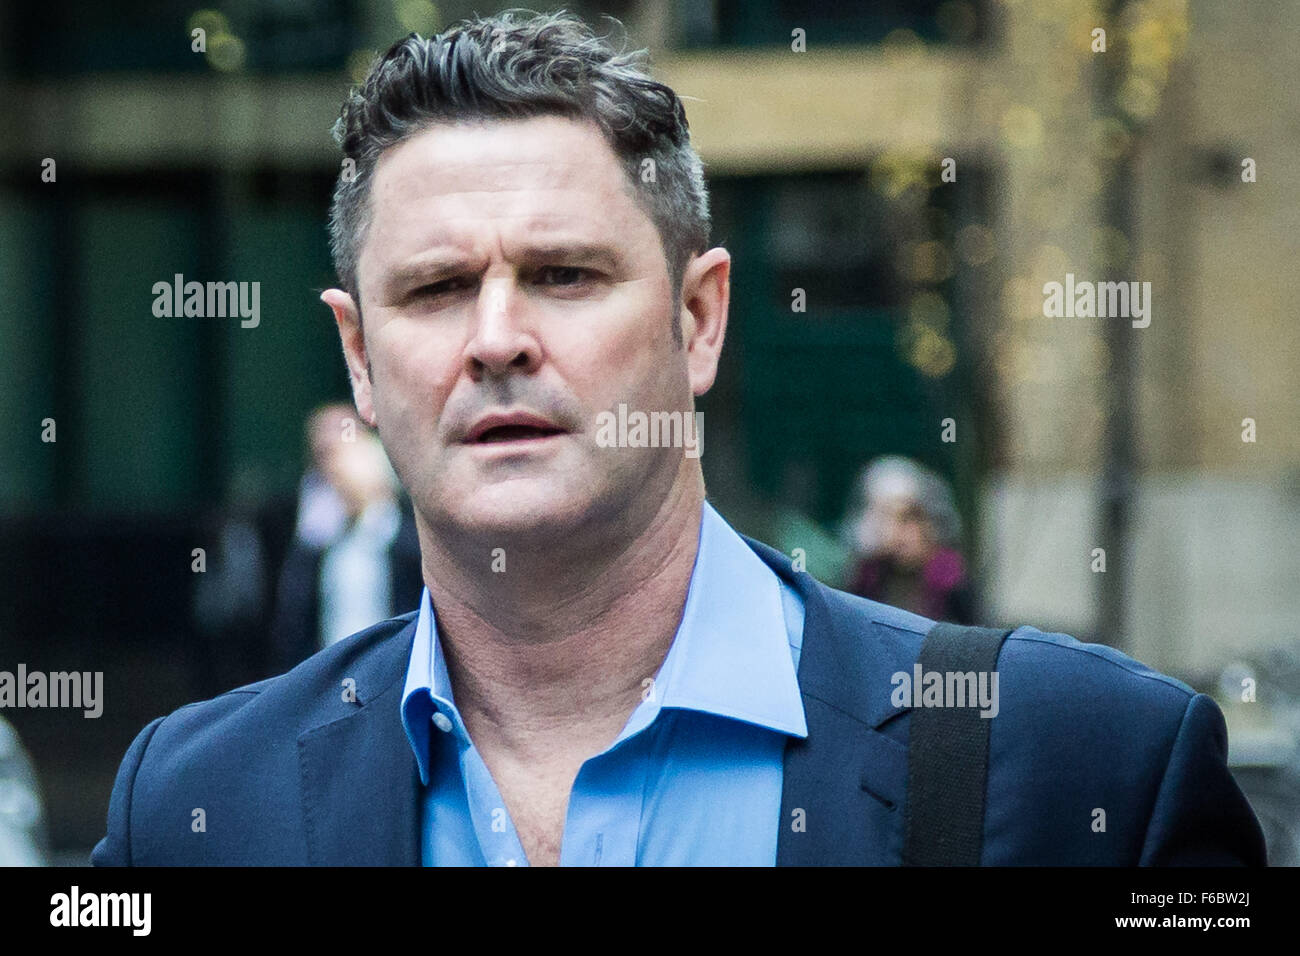 London, UK. 16th November, 2015. Cricketer Chris Cairns arrives at Southwark Crown Court to continue his trial on Stock Photo